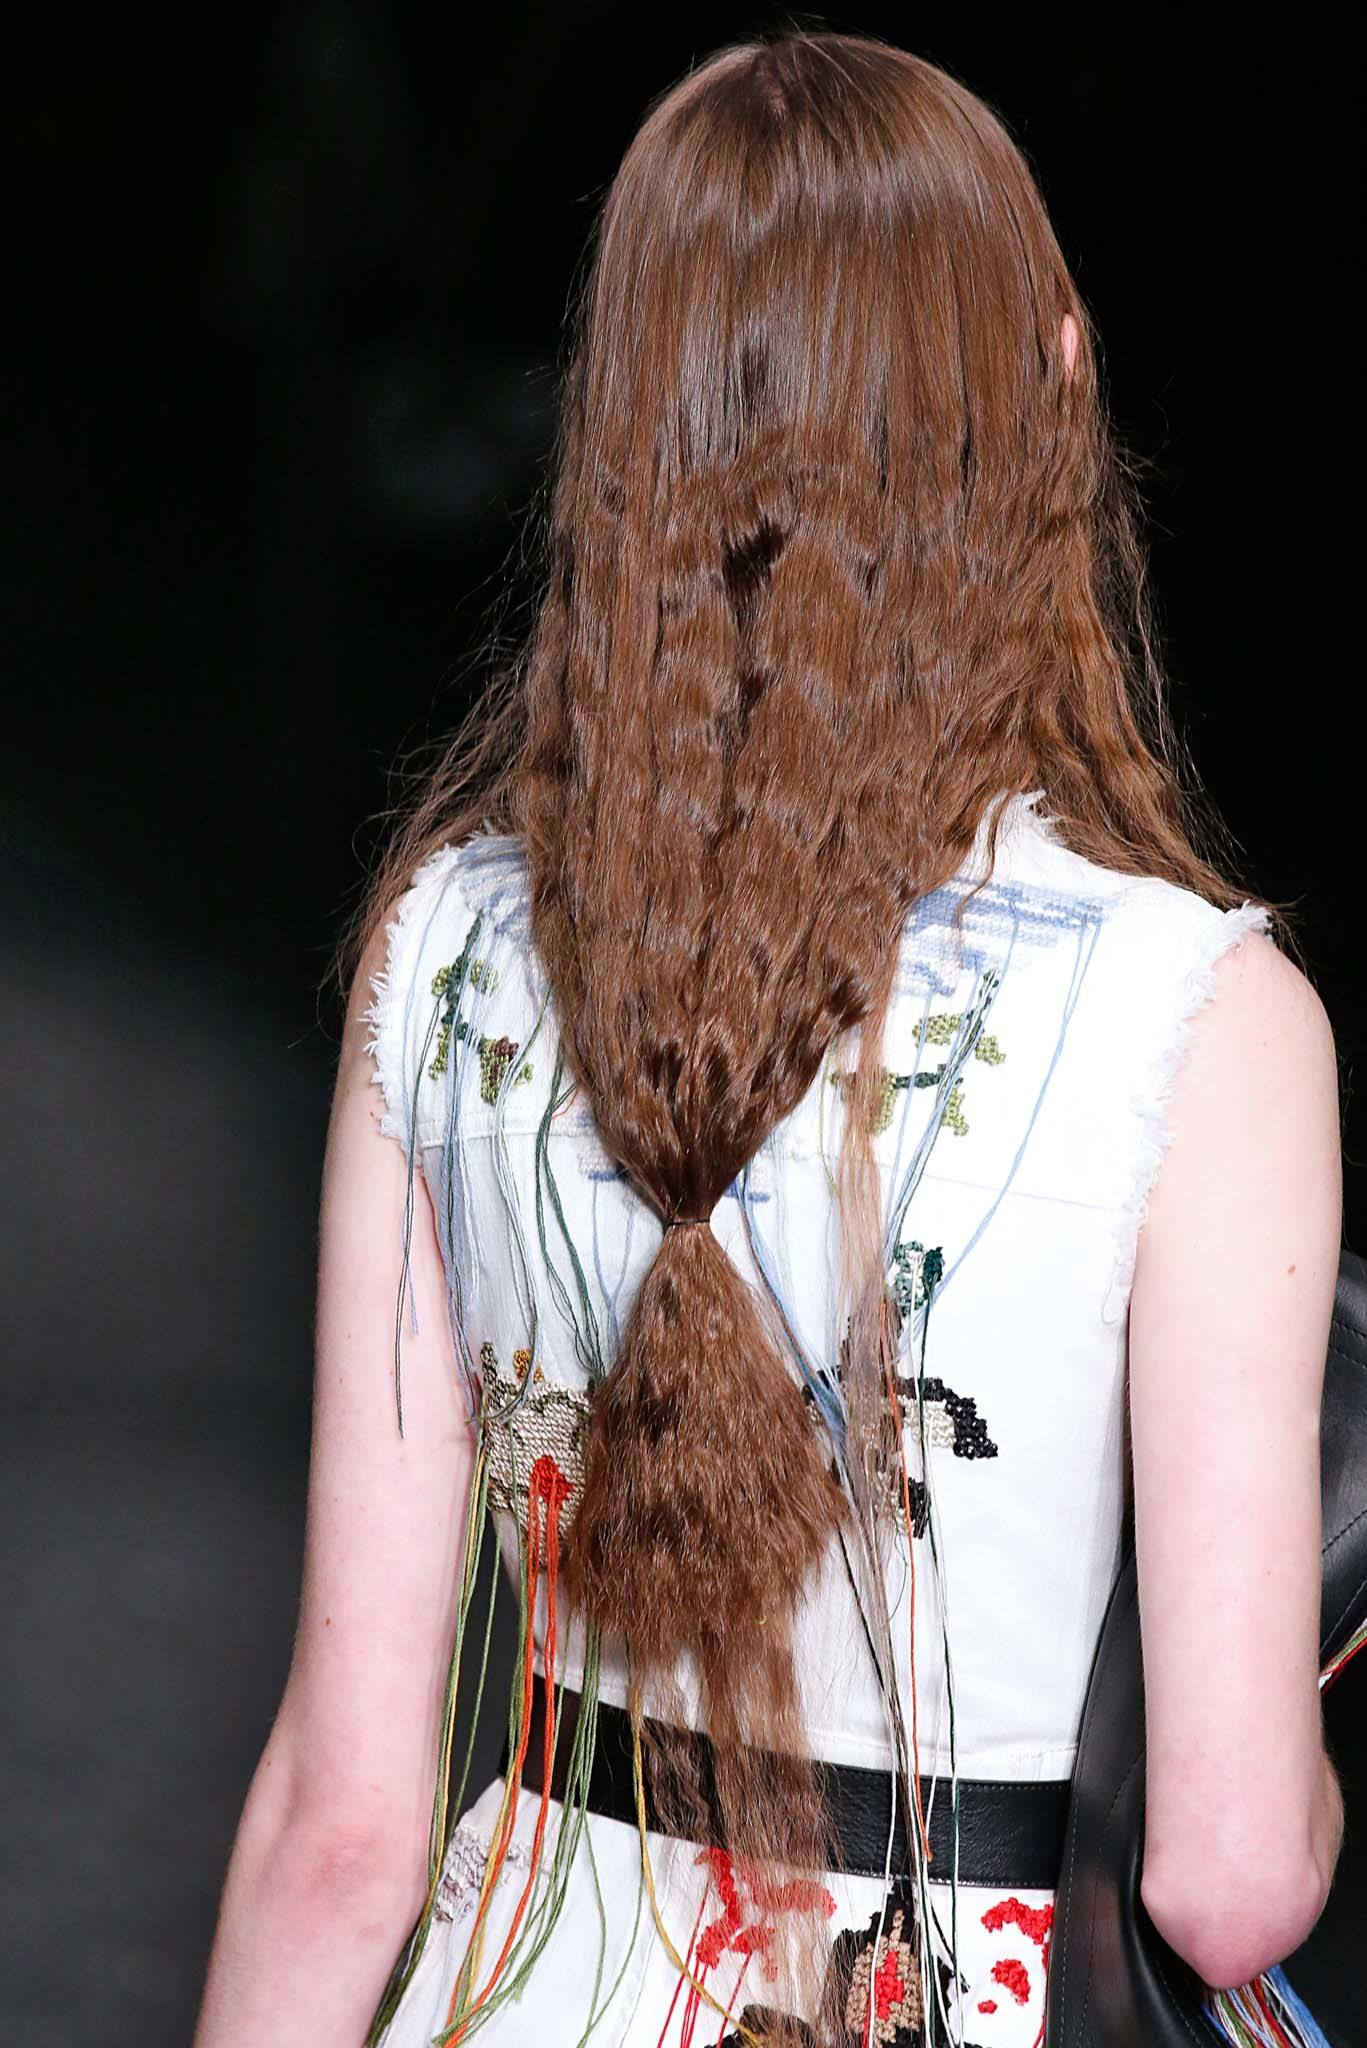 brunette model at alexander mcqueen pfw show with low ponytail